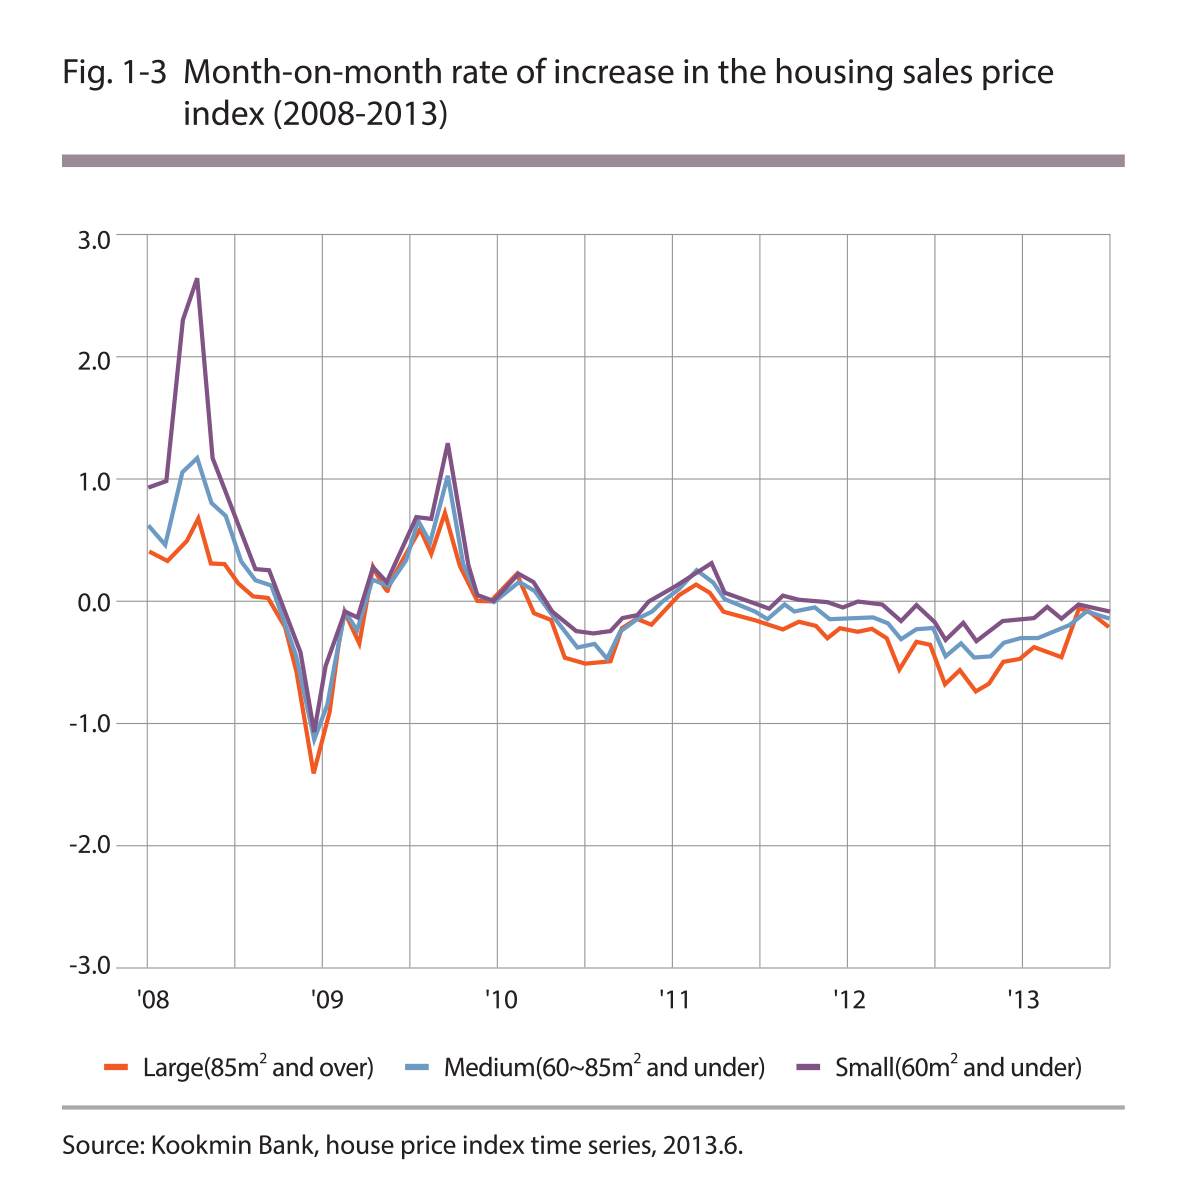 Month-on-month rate of increase in the housing sales price index (2008-2013)